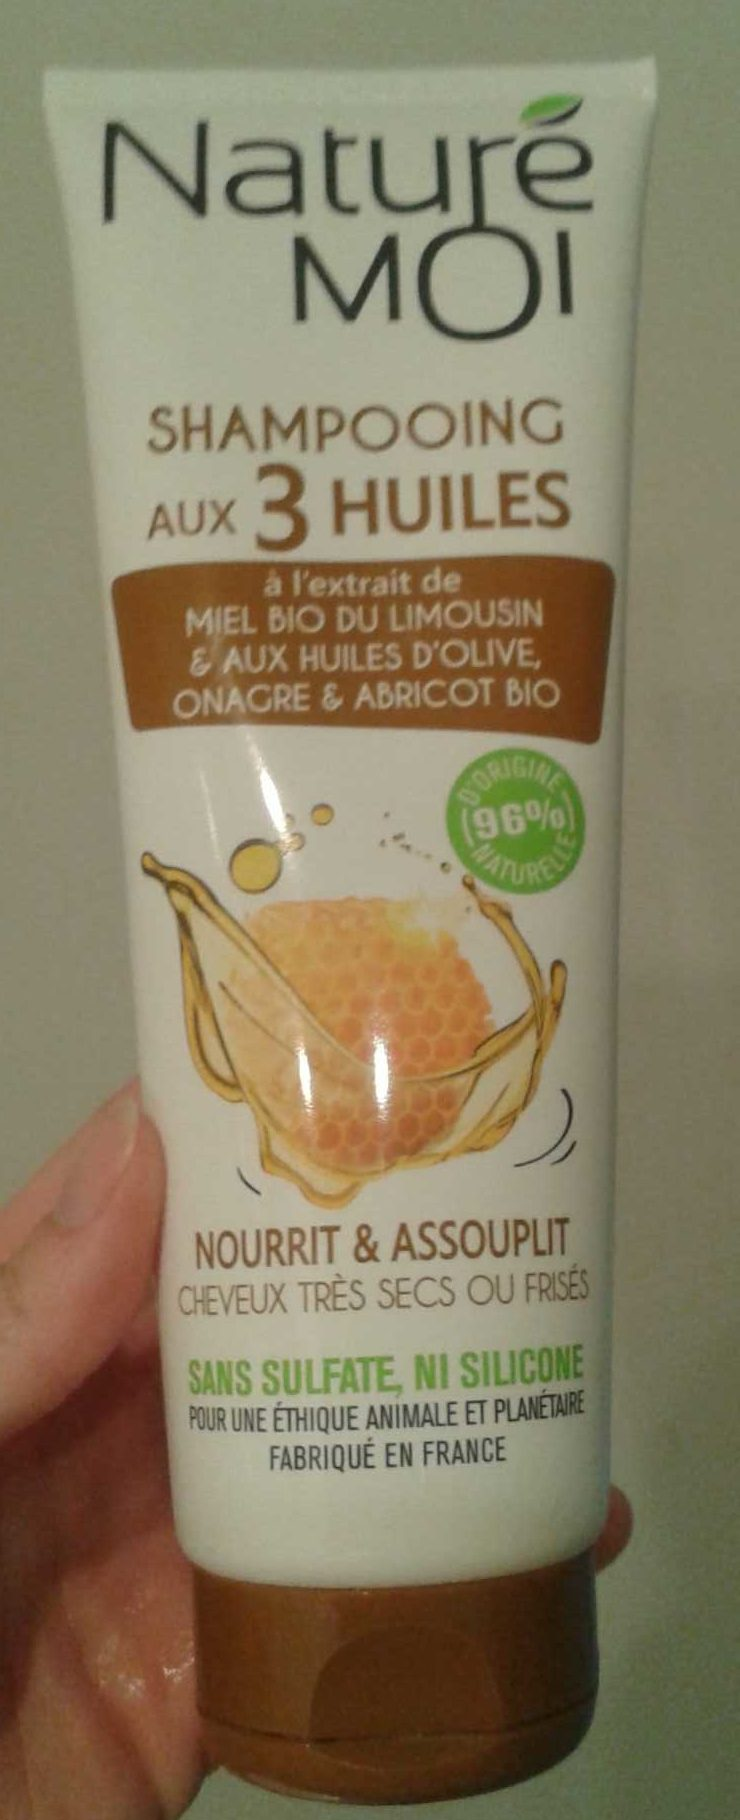 Shampooing aux 3 Huiles - Product - fr